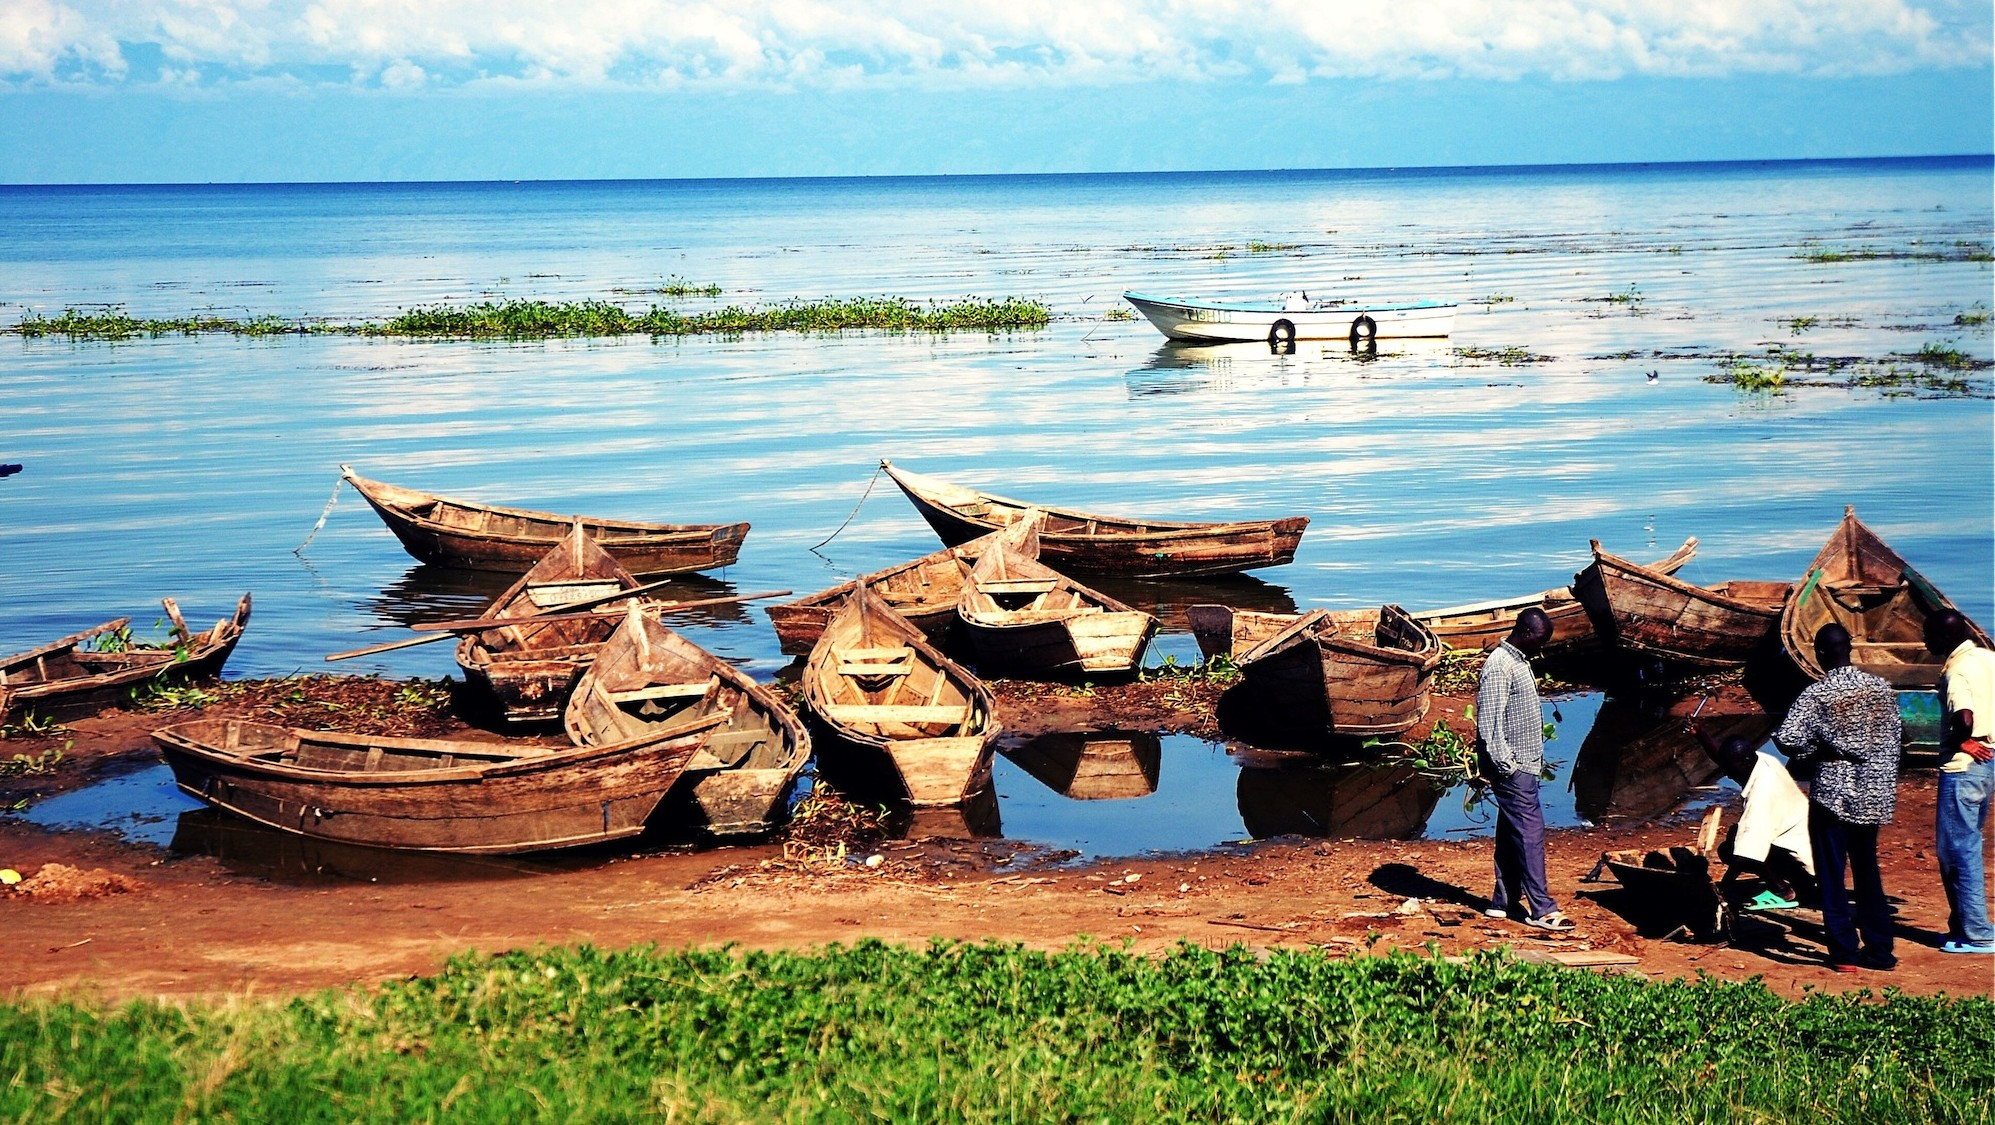 Boats on shore of Lake Victoria in Africa